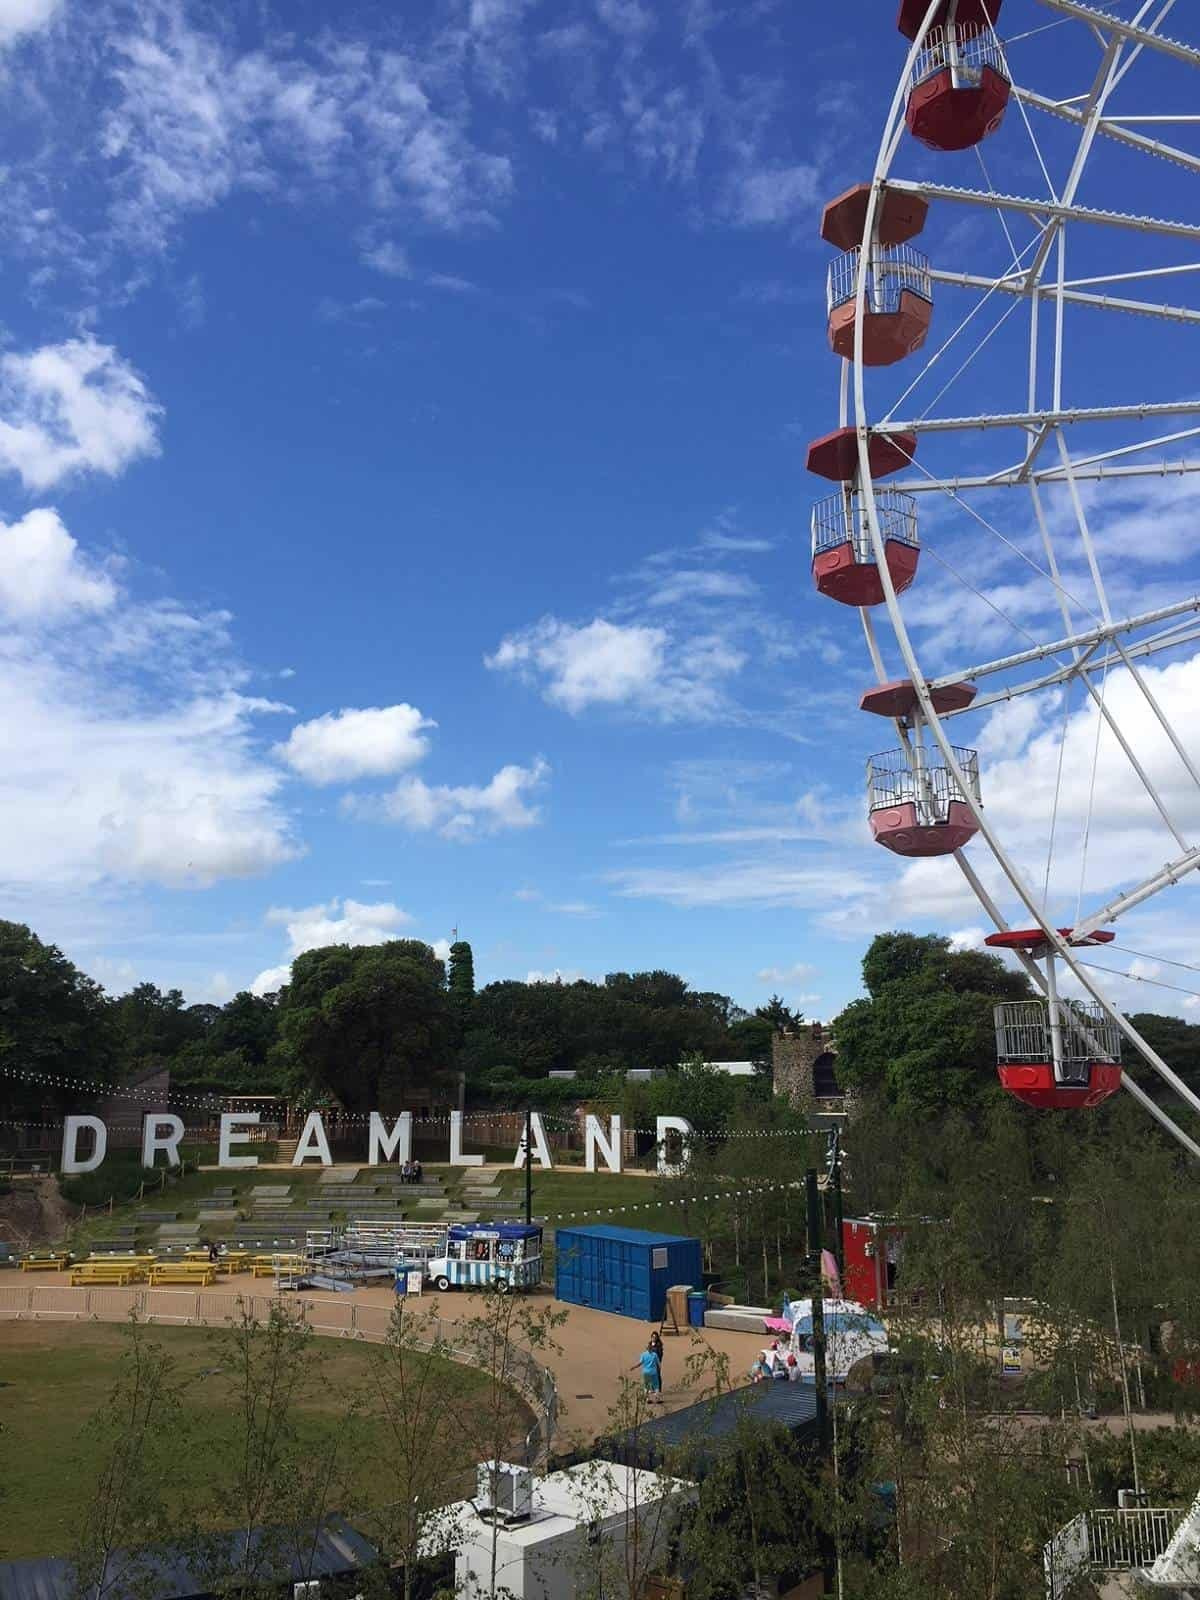 Dreamland theme park in Margate